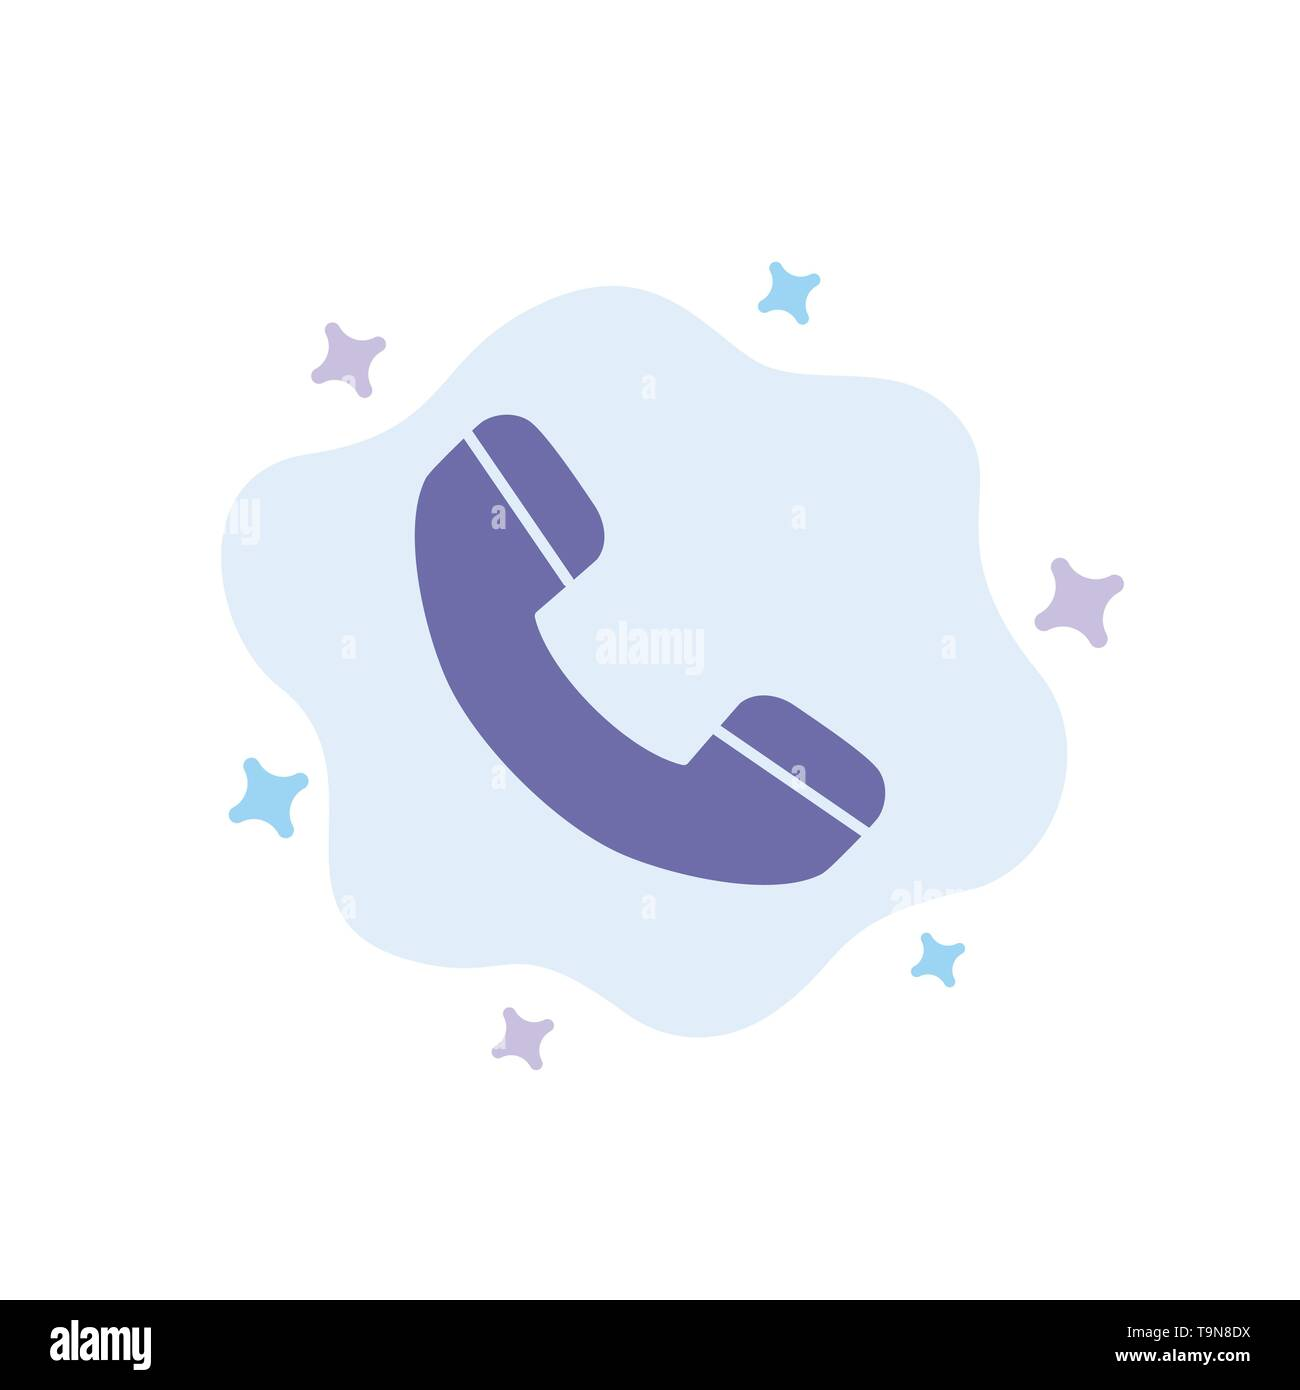 Call, Phone, Telephone Blue Icon on Abstract Cloud Background - Stock Image